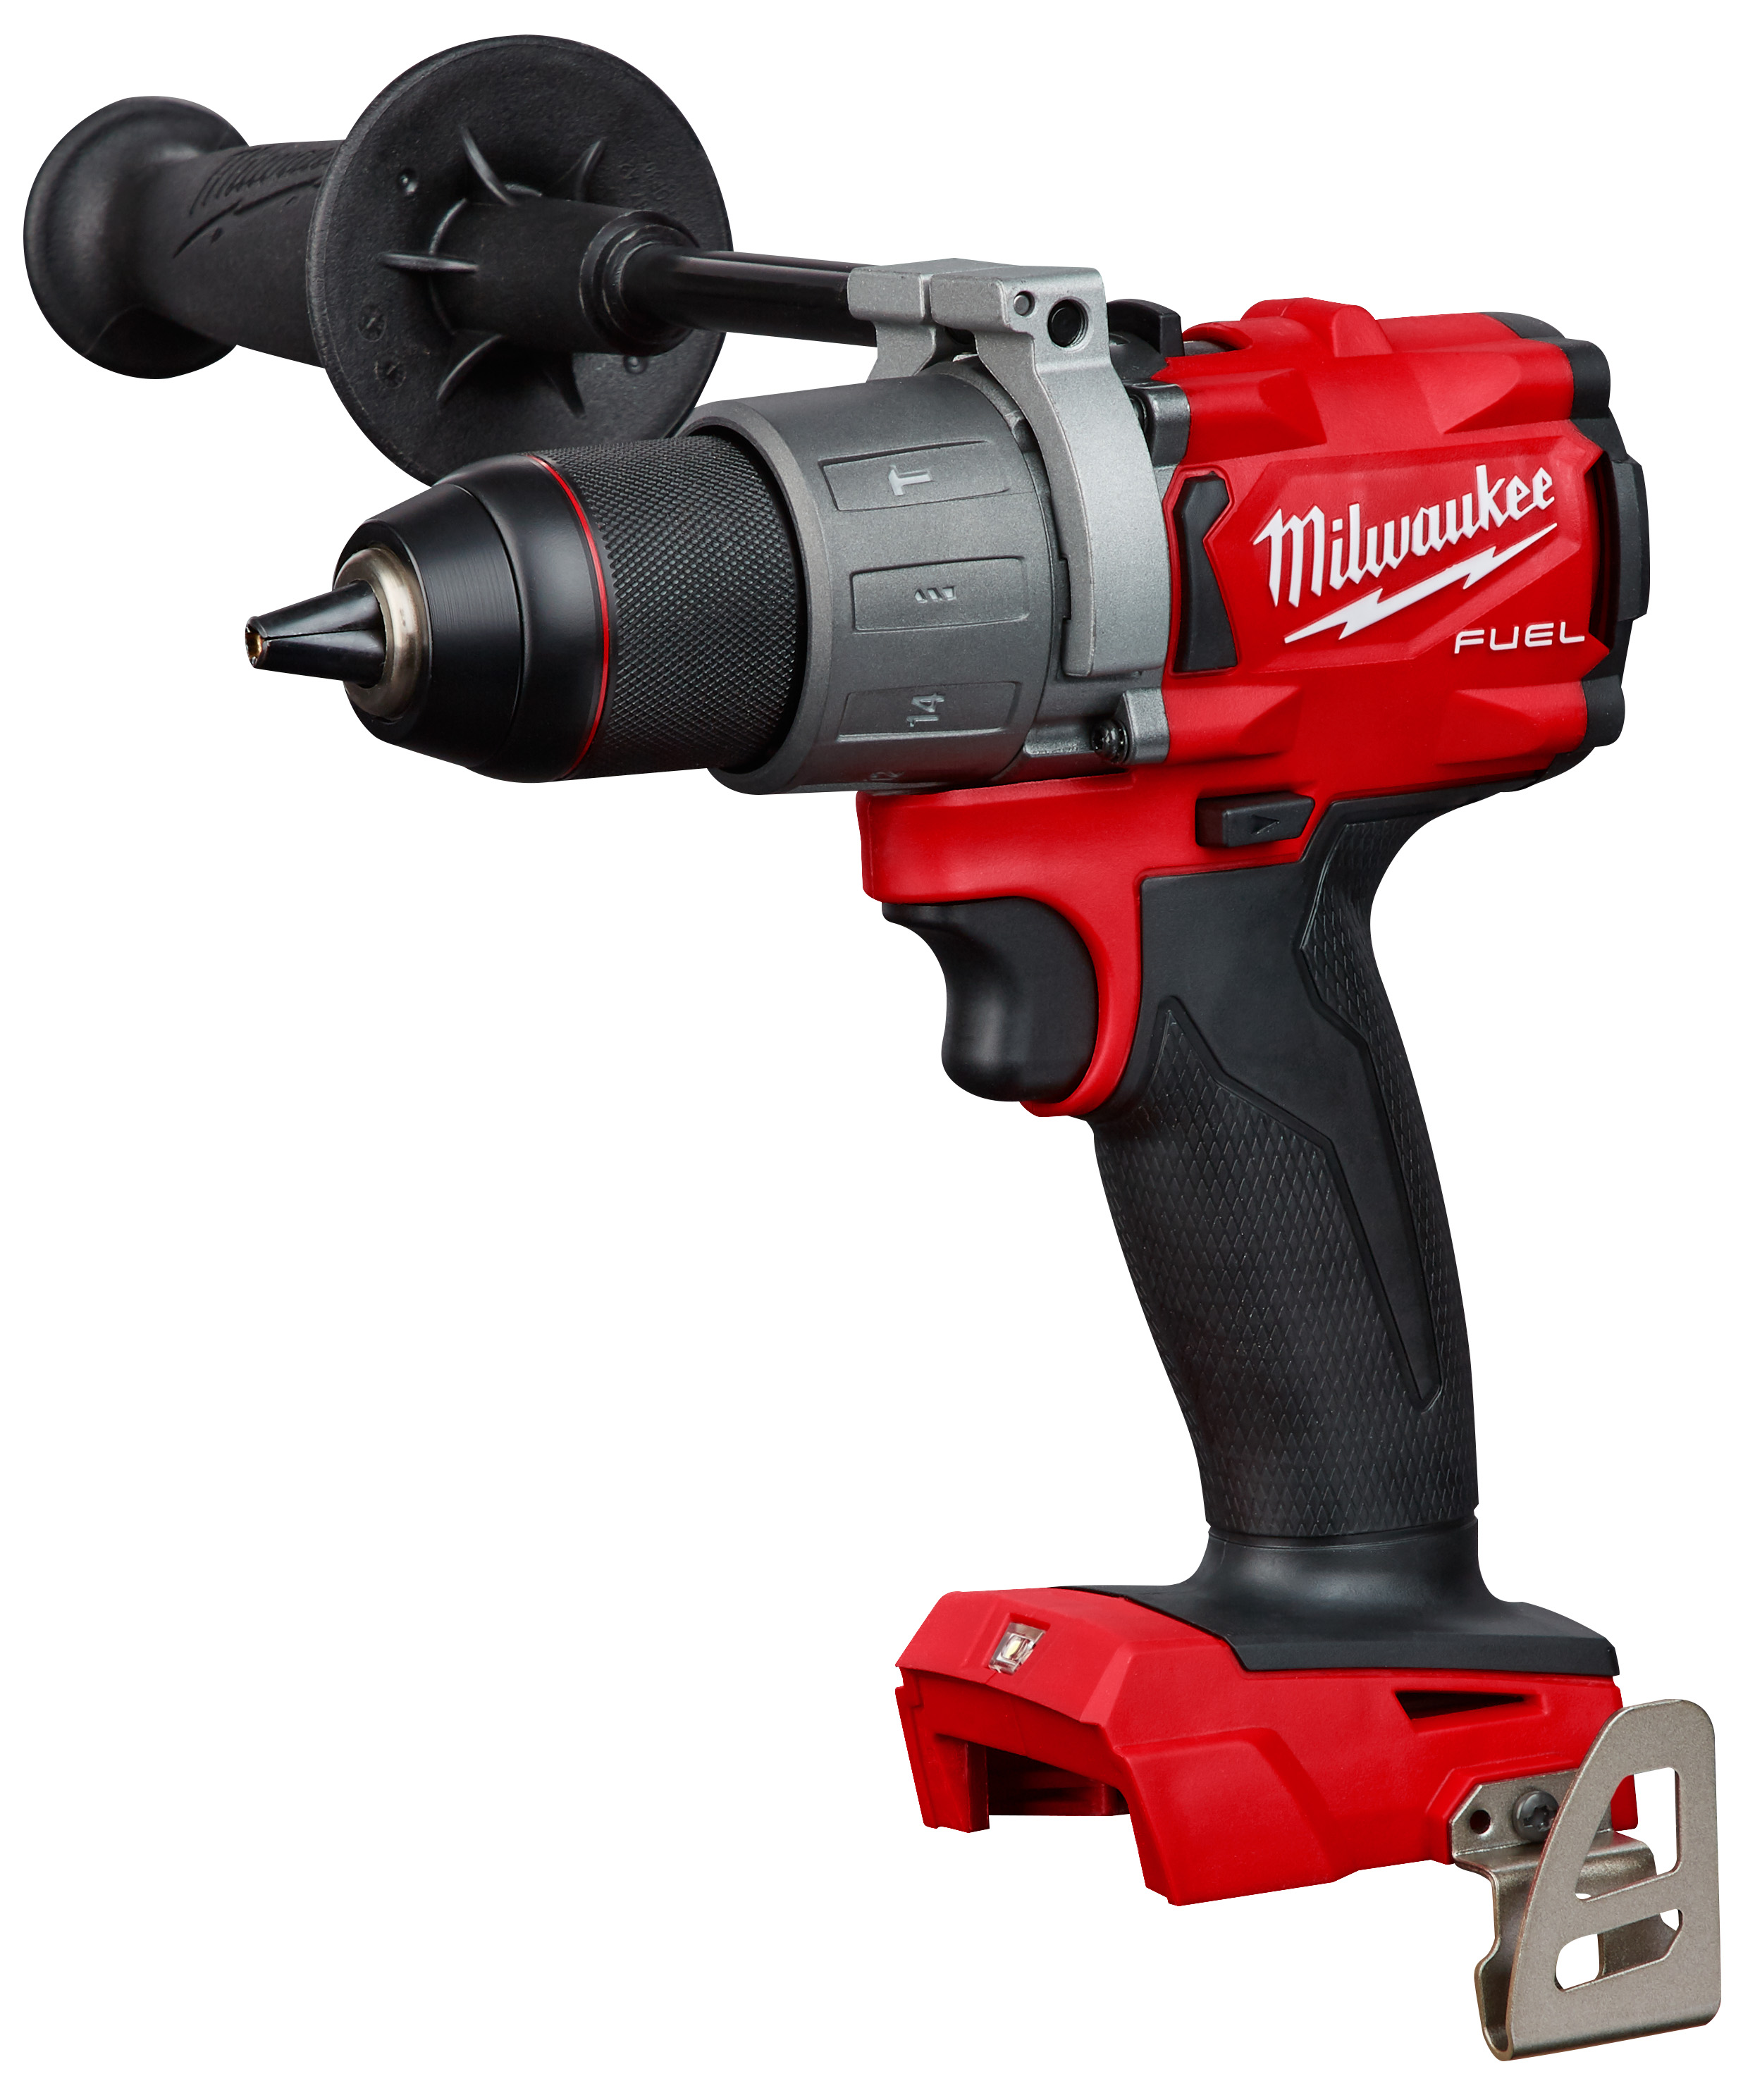 Milwaukee® M18™ FUEL™ 2804-20 Compact Cordless Lightweight Hammer Drill/Driver, 1/2 in Hex Chuck, 18 VDC, 0 to 550 rpm, 0 to 2000 rpm No-Load, REDLITHIUM™ Battery